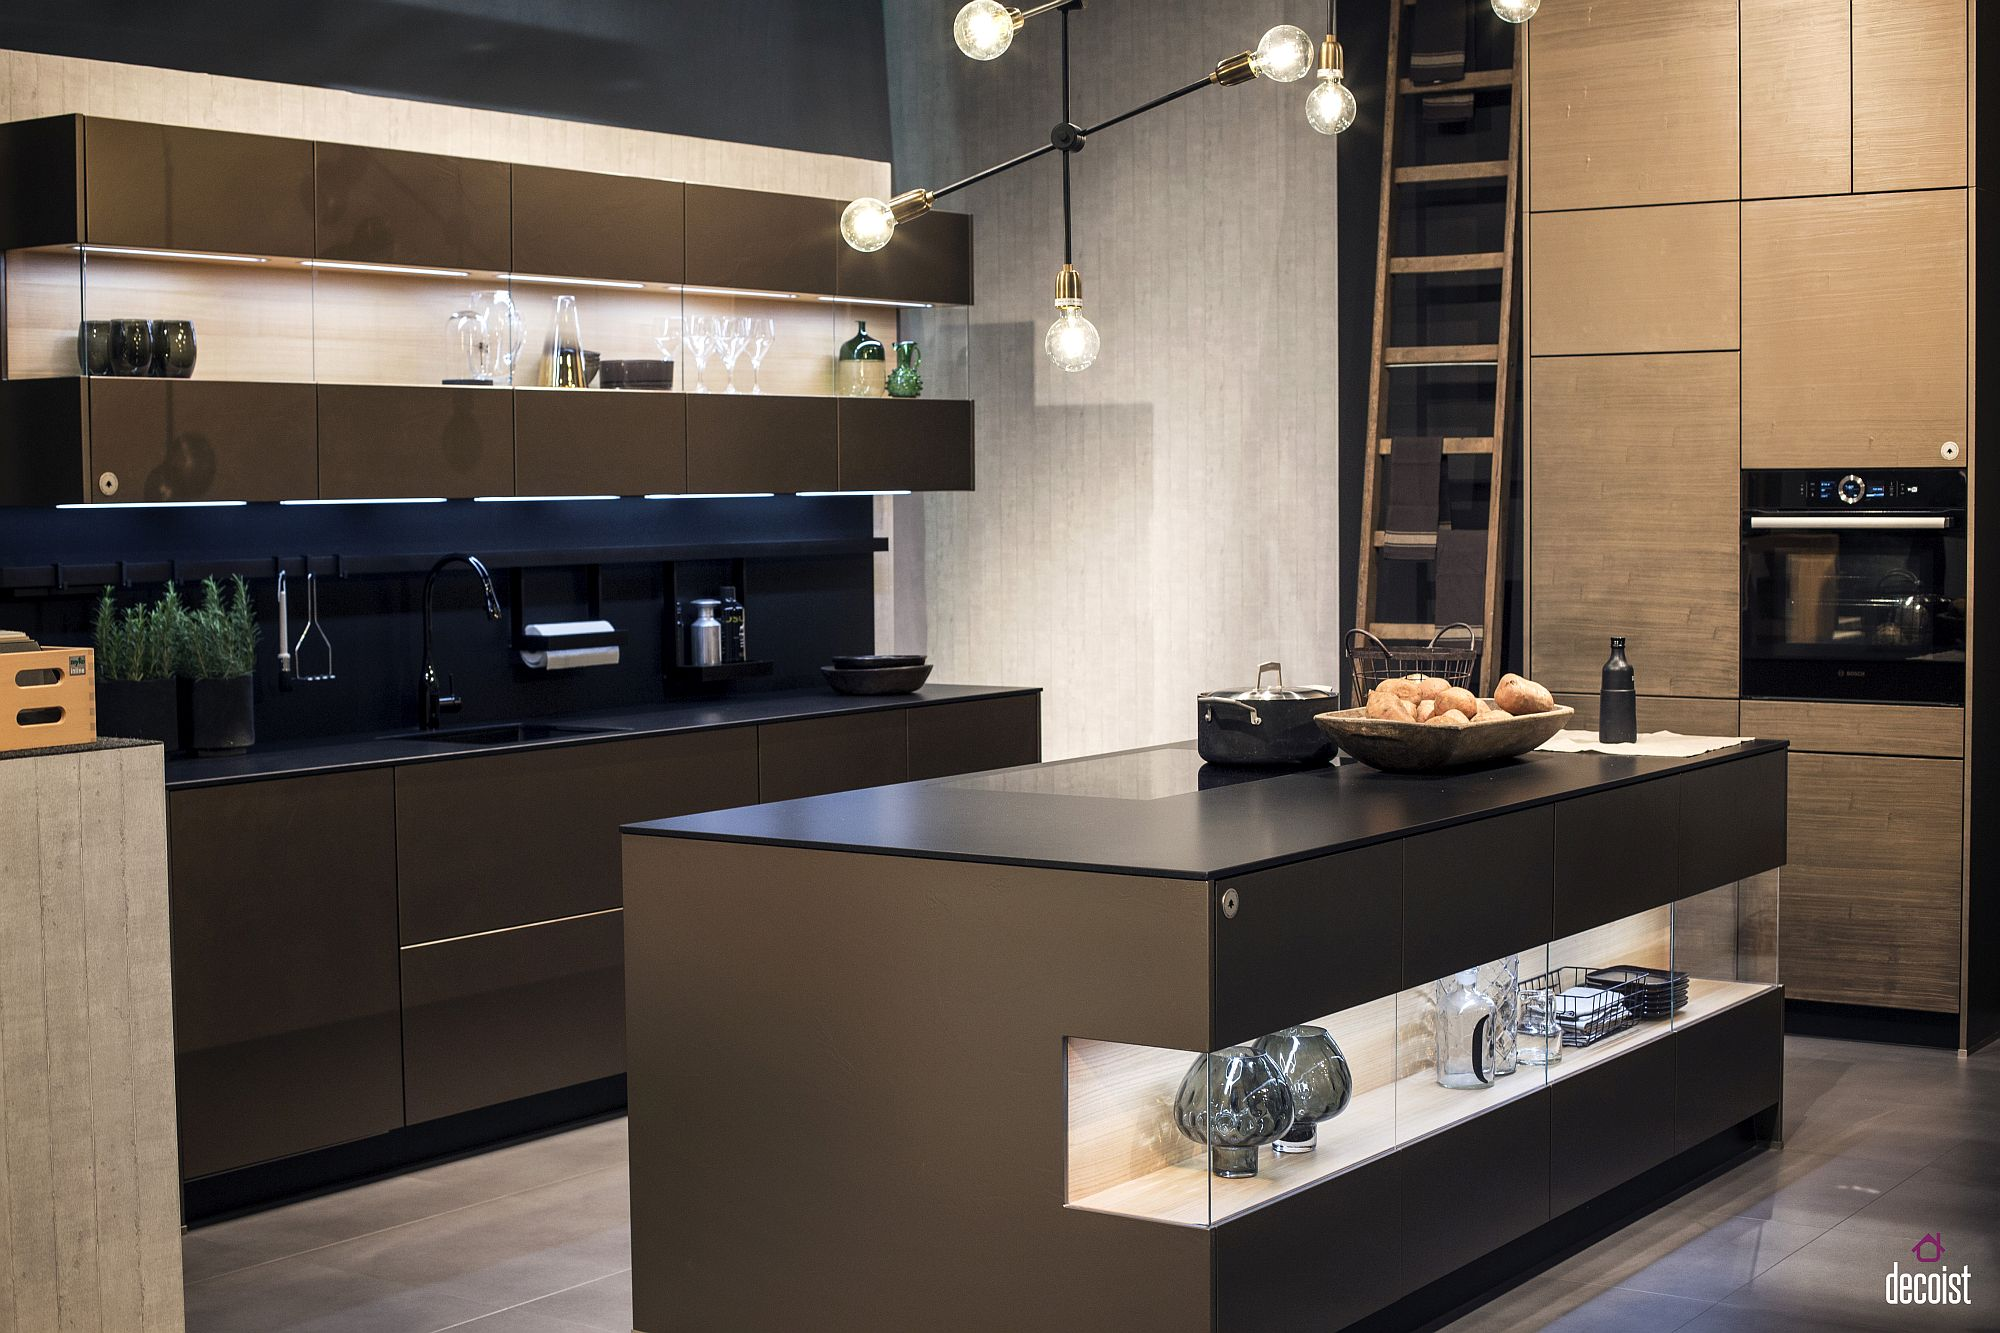 Sleek and contemporary kitchen island in black with illuminated open shelf